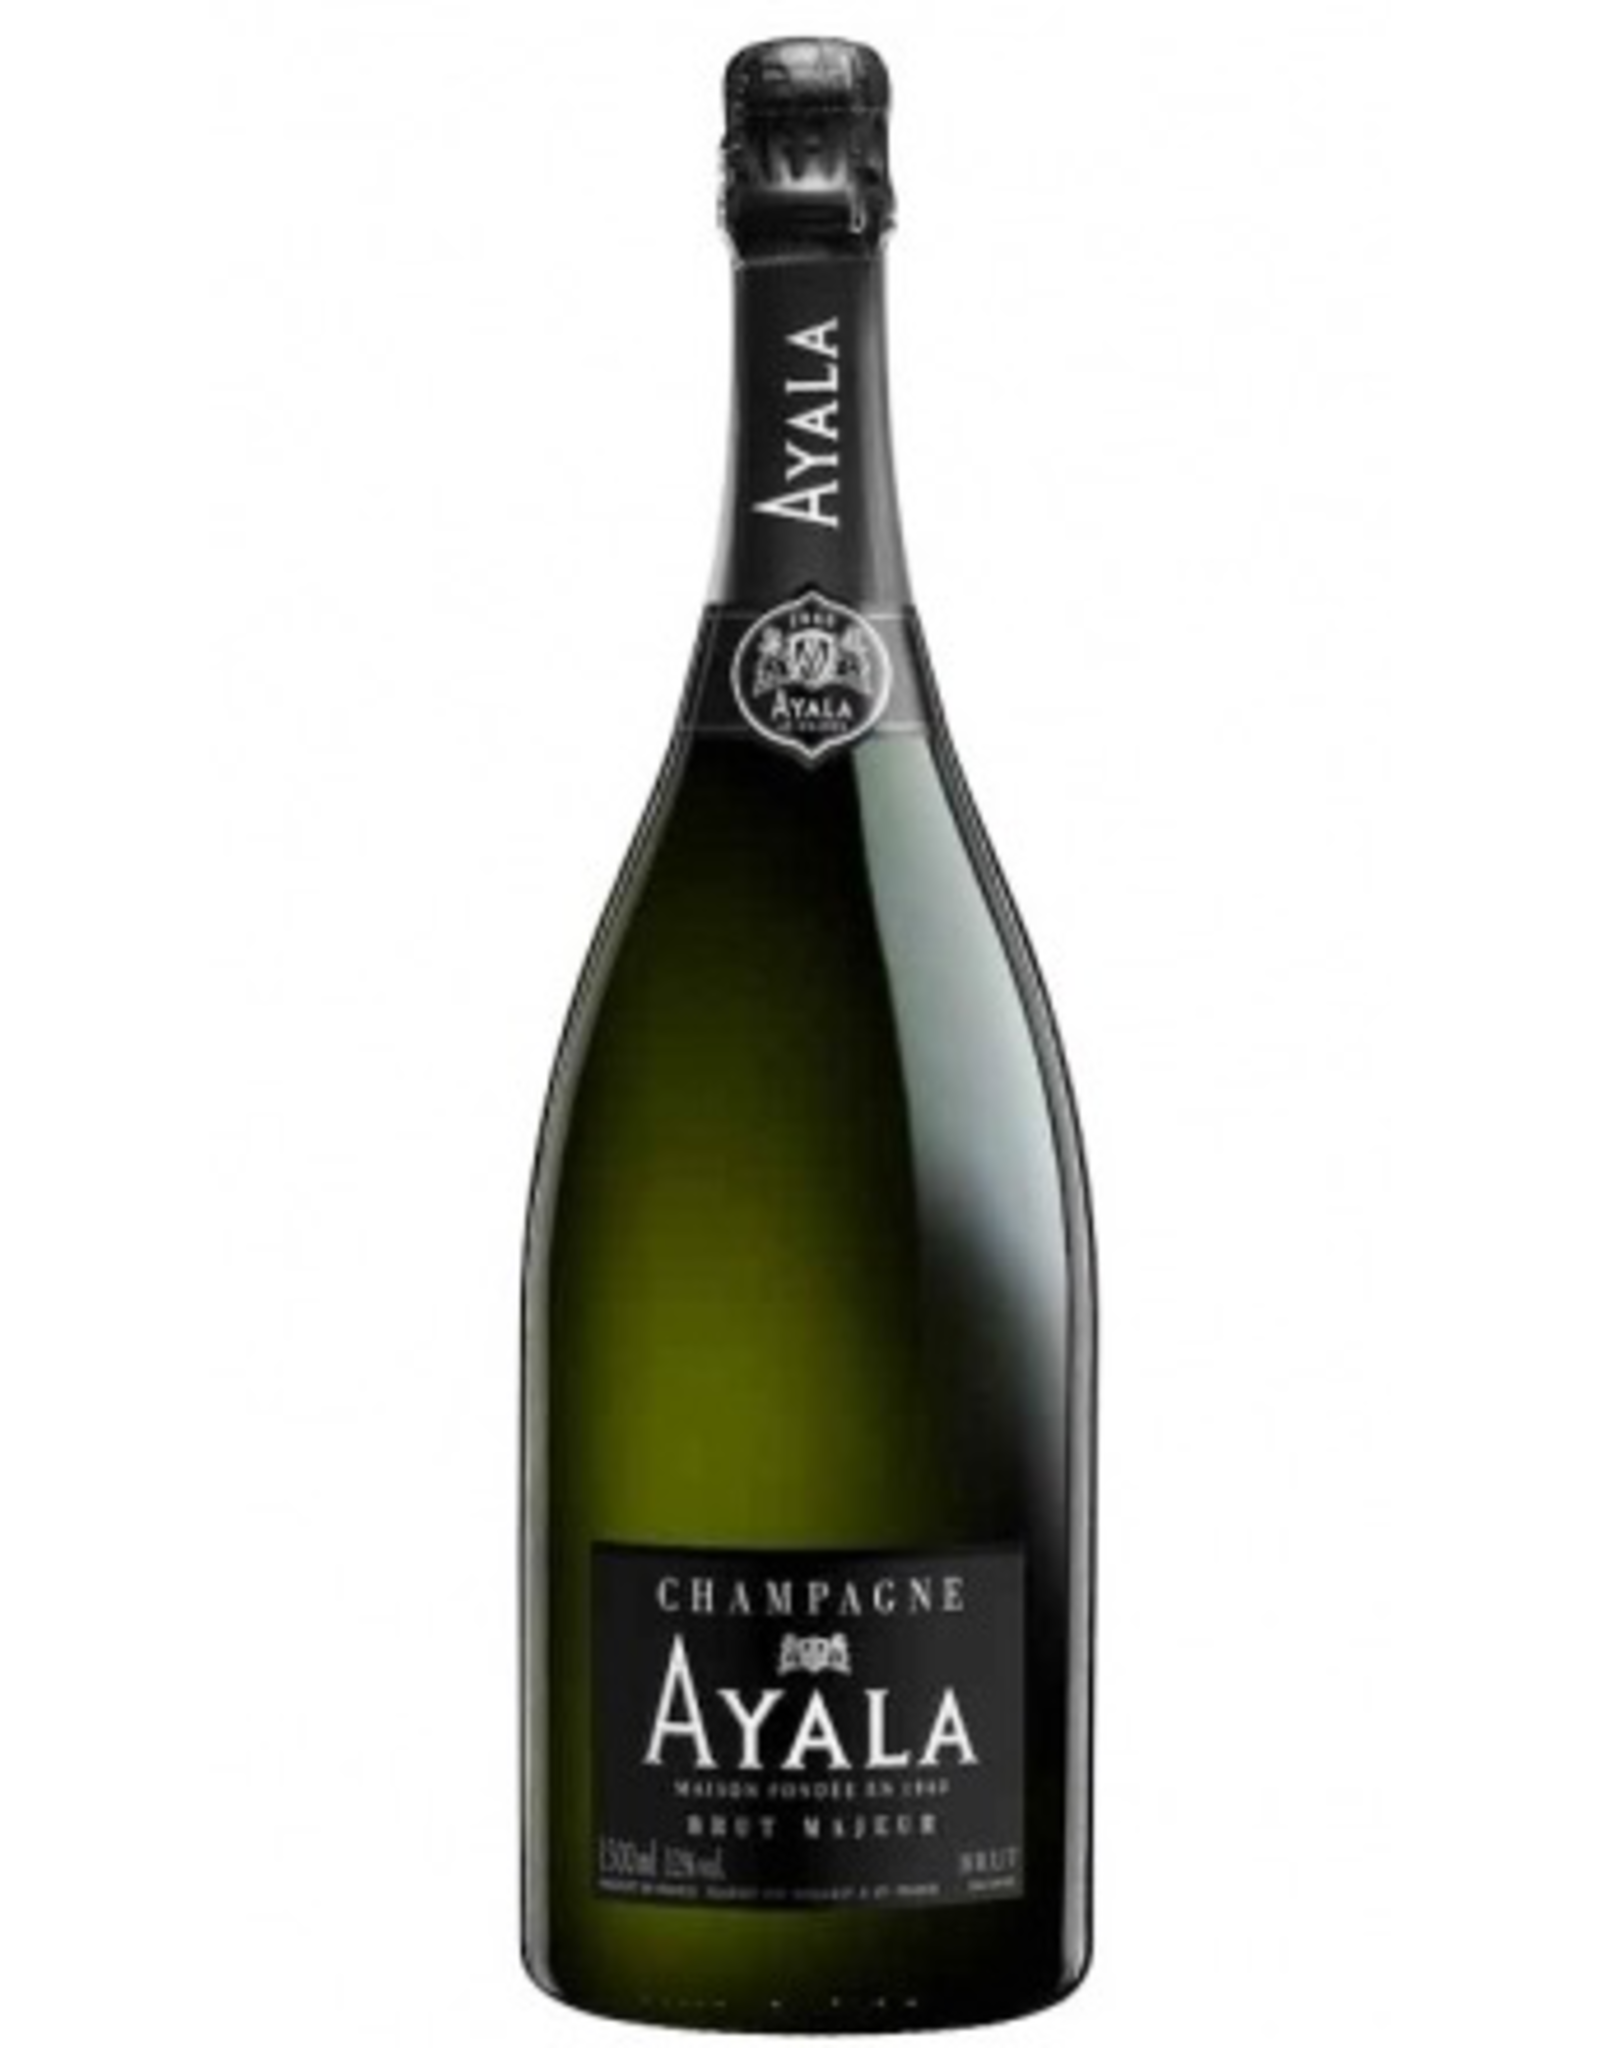 Sparkling Wine NV, Ayala Brut Majeur, Champagne, Ay, Champagne, France, 12% Alc, CT TW92